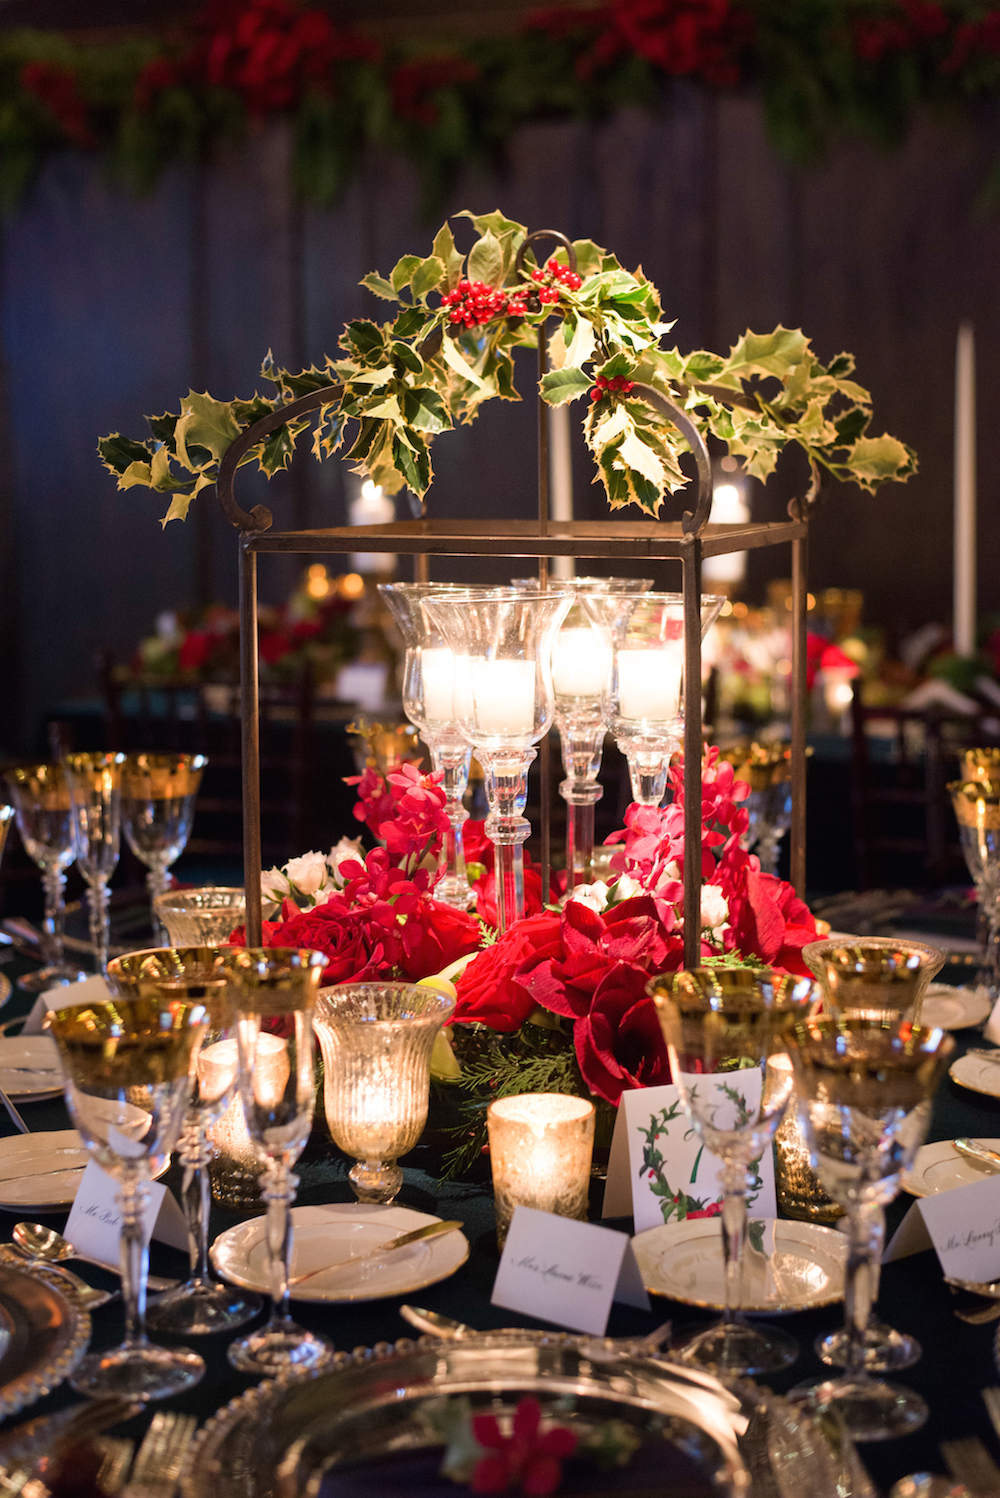 How to Include Holiday Touches in Your December Wedding  Inside Weddings